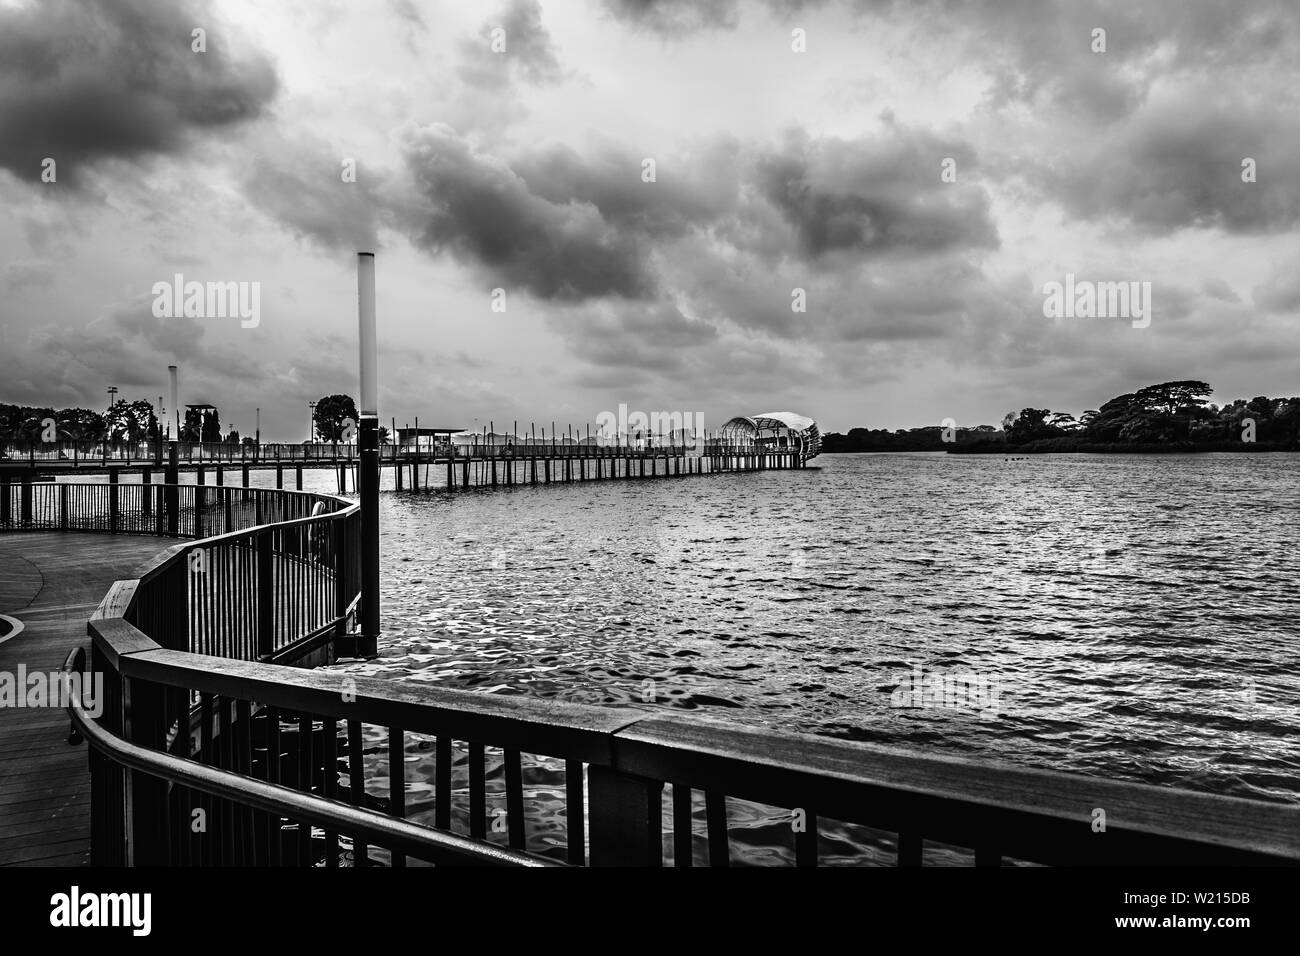 Singapore - Aug 4, 2018: Lower Seletar Reservoir is a reservoir located in the northeastern part of Singapore, to the east of Yishun New Town. Stock Photo